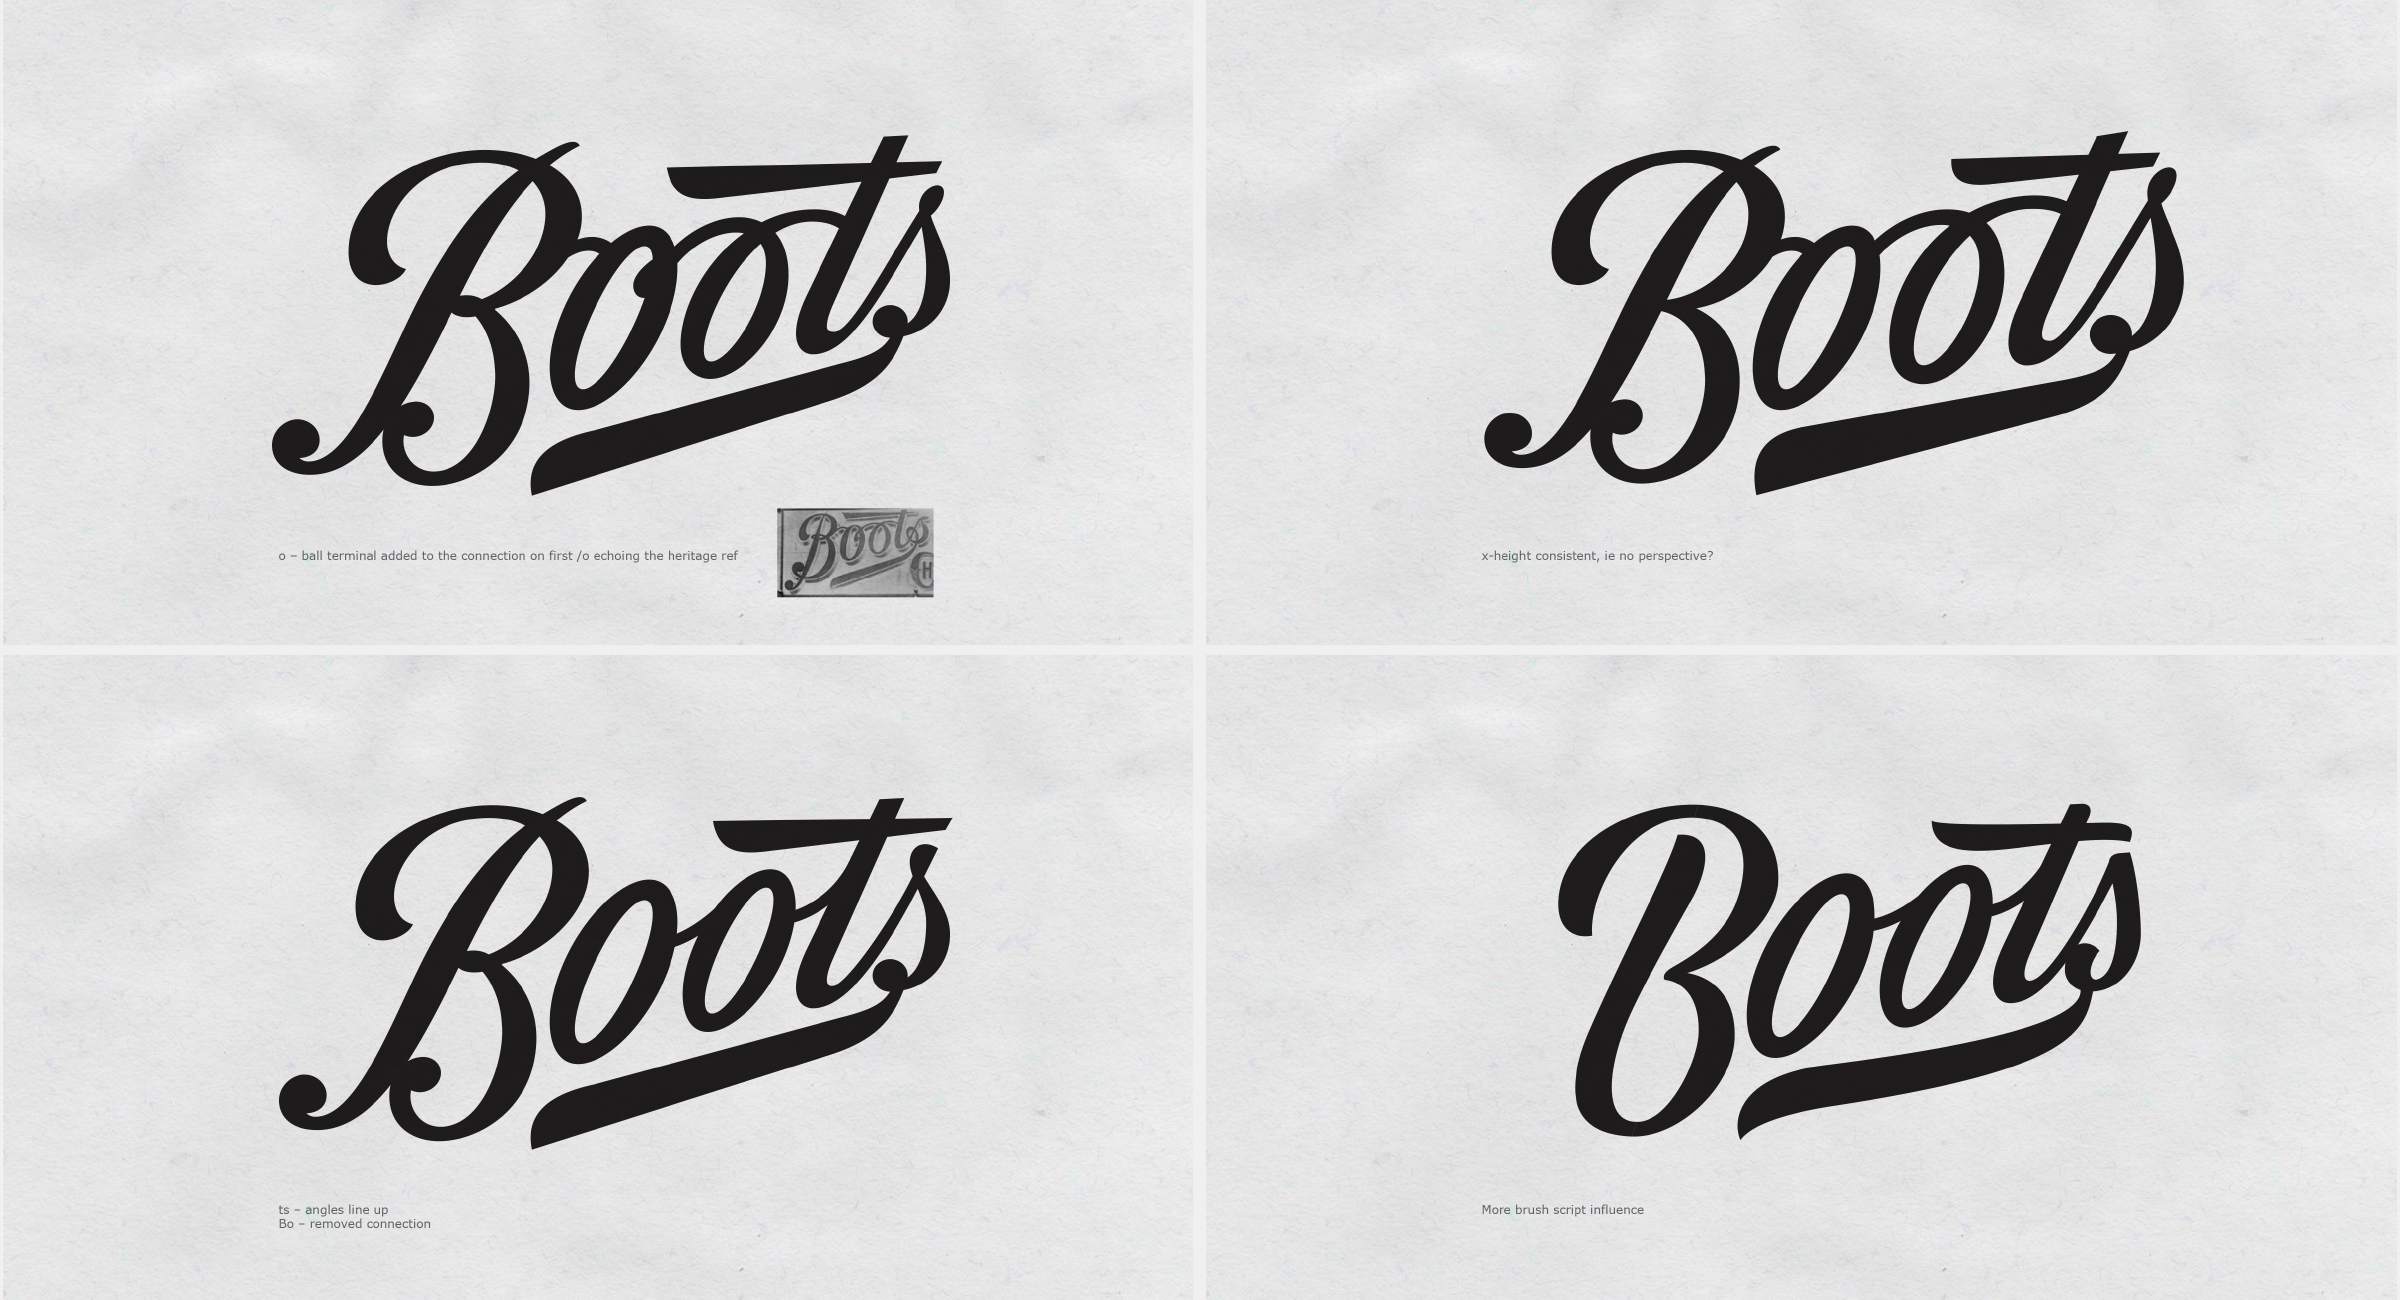 The Process of Boots Logo Redesign With Rob Clarke